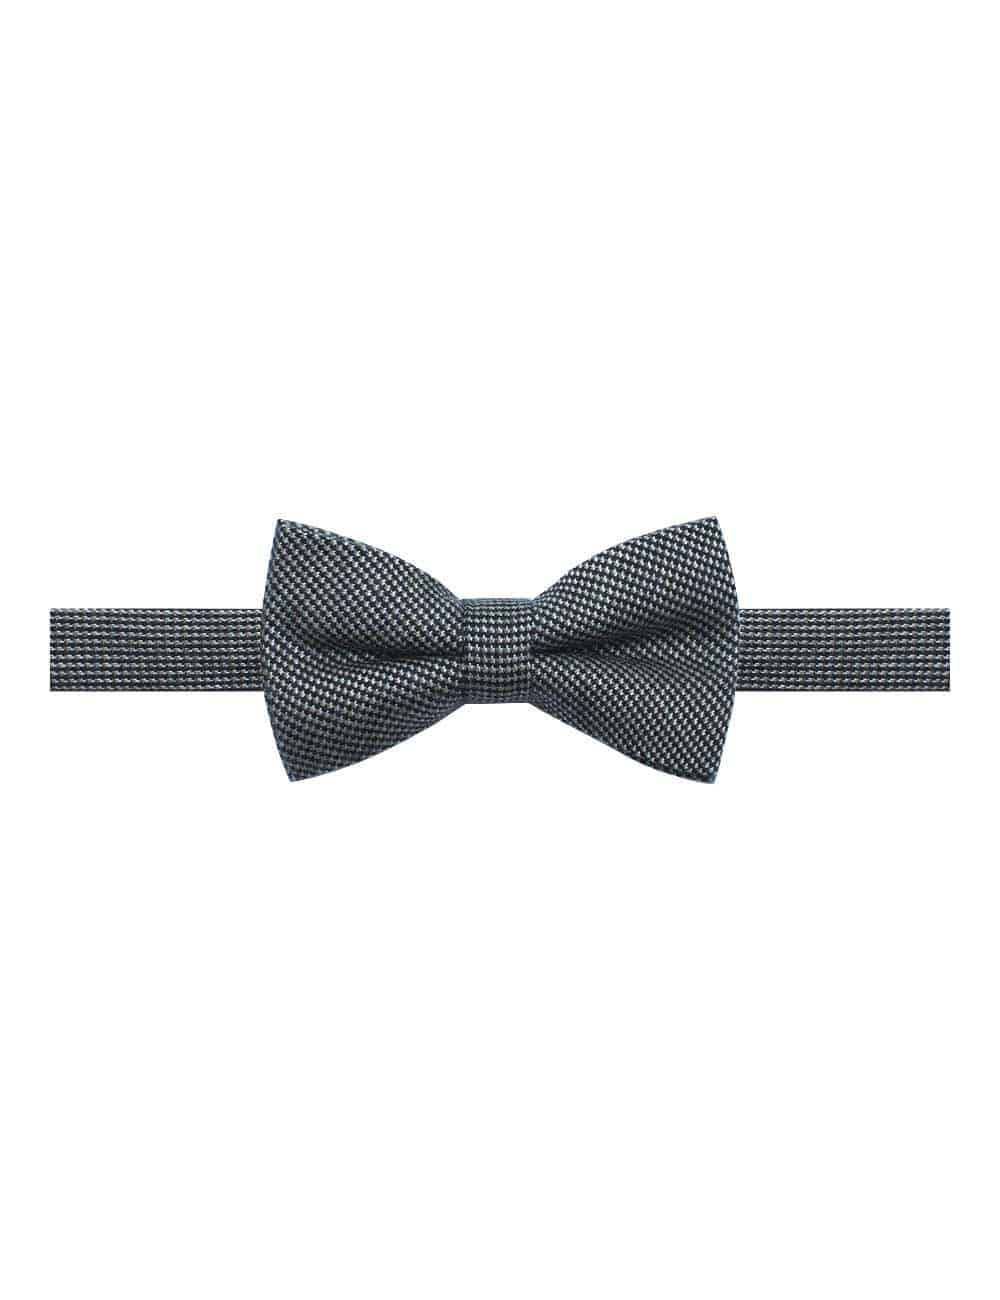 Black and White Pattern Woven Clip-on Bowtie WBT26.8